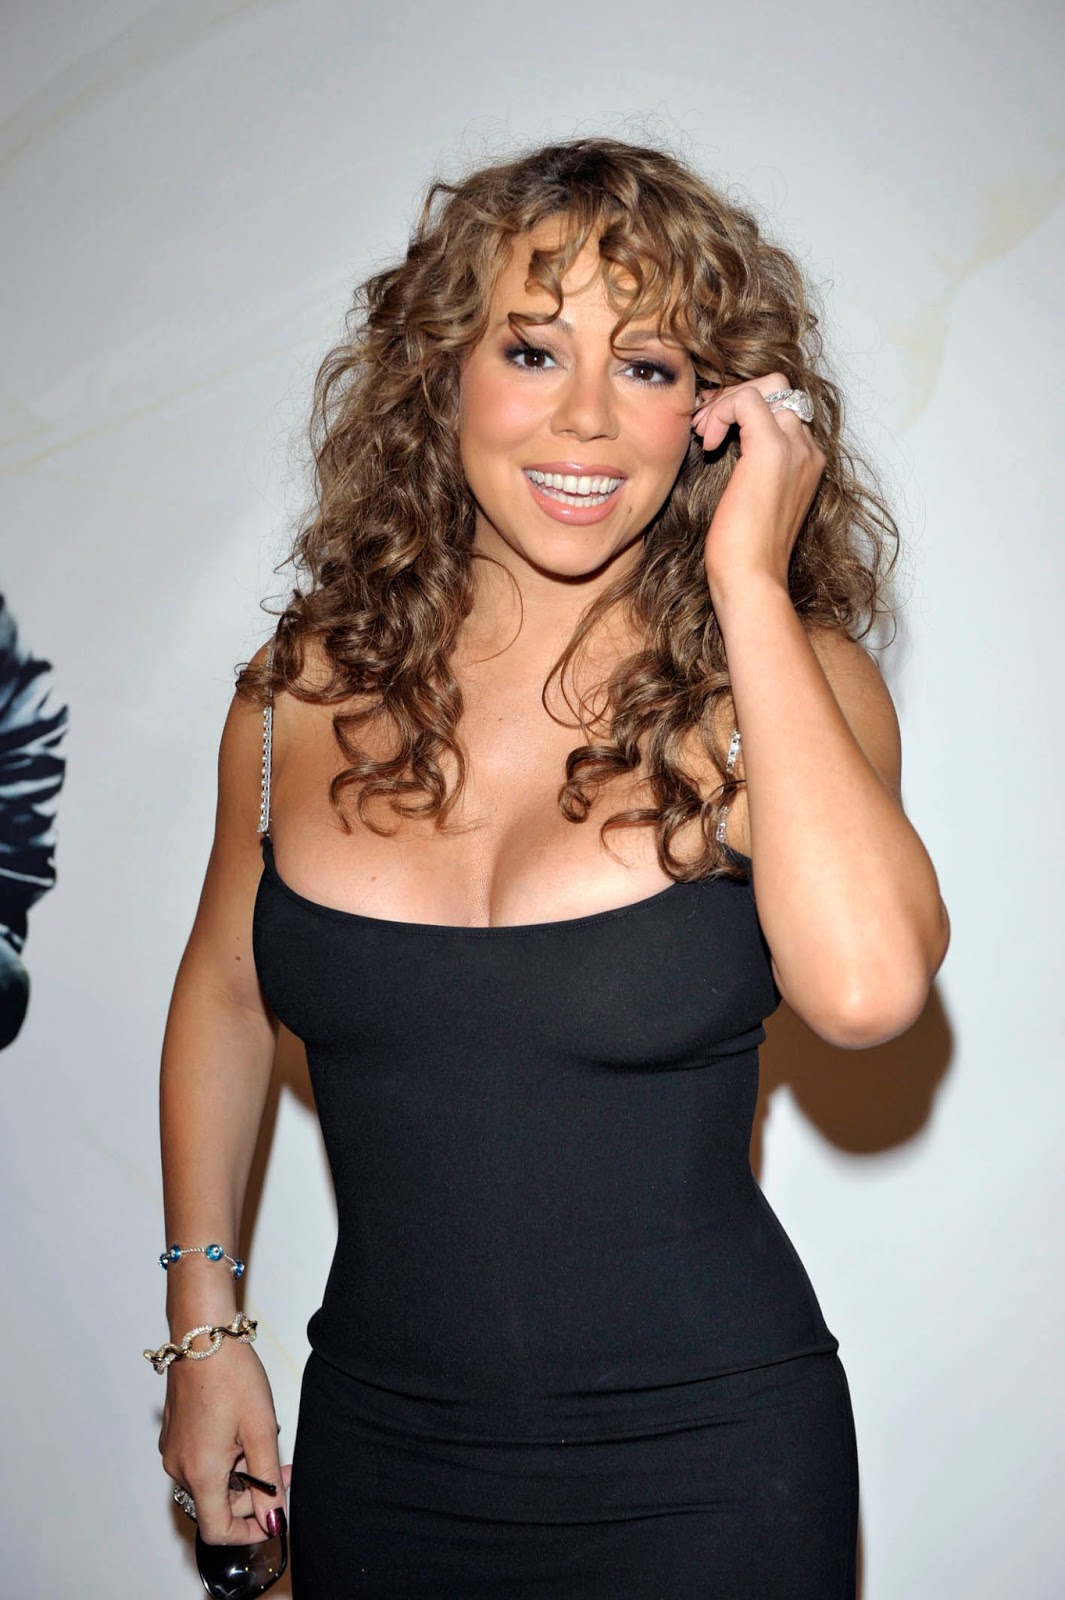 mariah carey Browse mariah carey nude pictures, photos, images, gifs, and videos on photobucket.